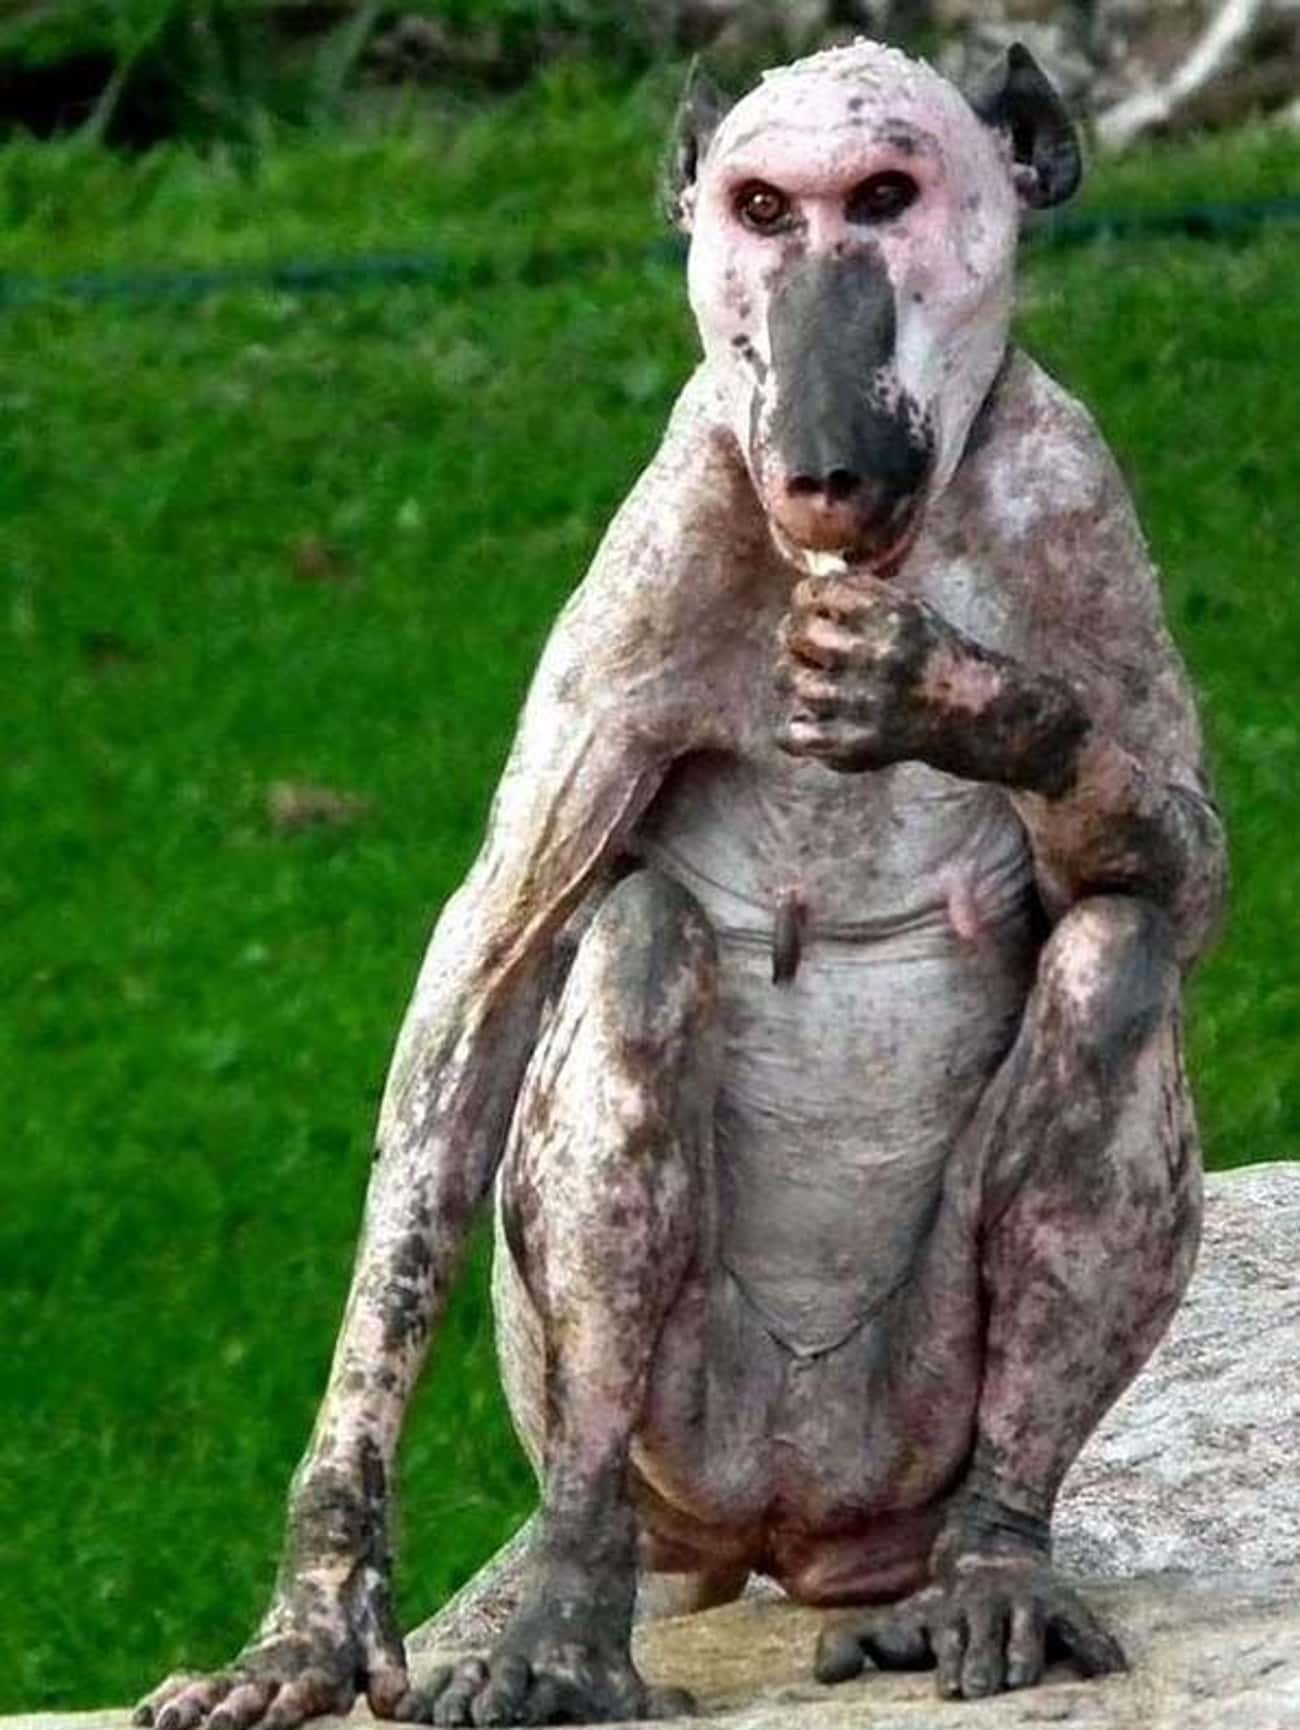 This Poor Hairless Baboon Spot is listed (or ranked) 1 on the list 22 Animals That Look Way More Terrifying When They're Hairless